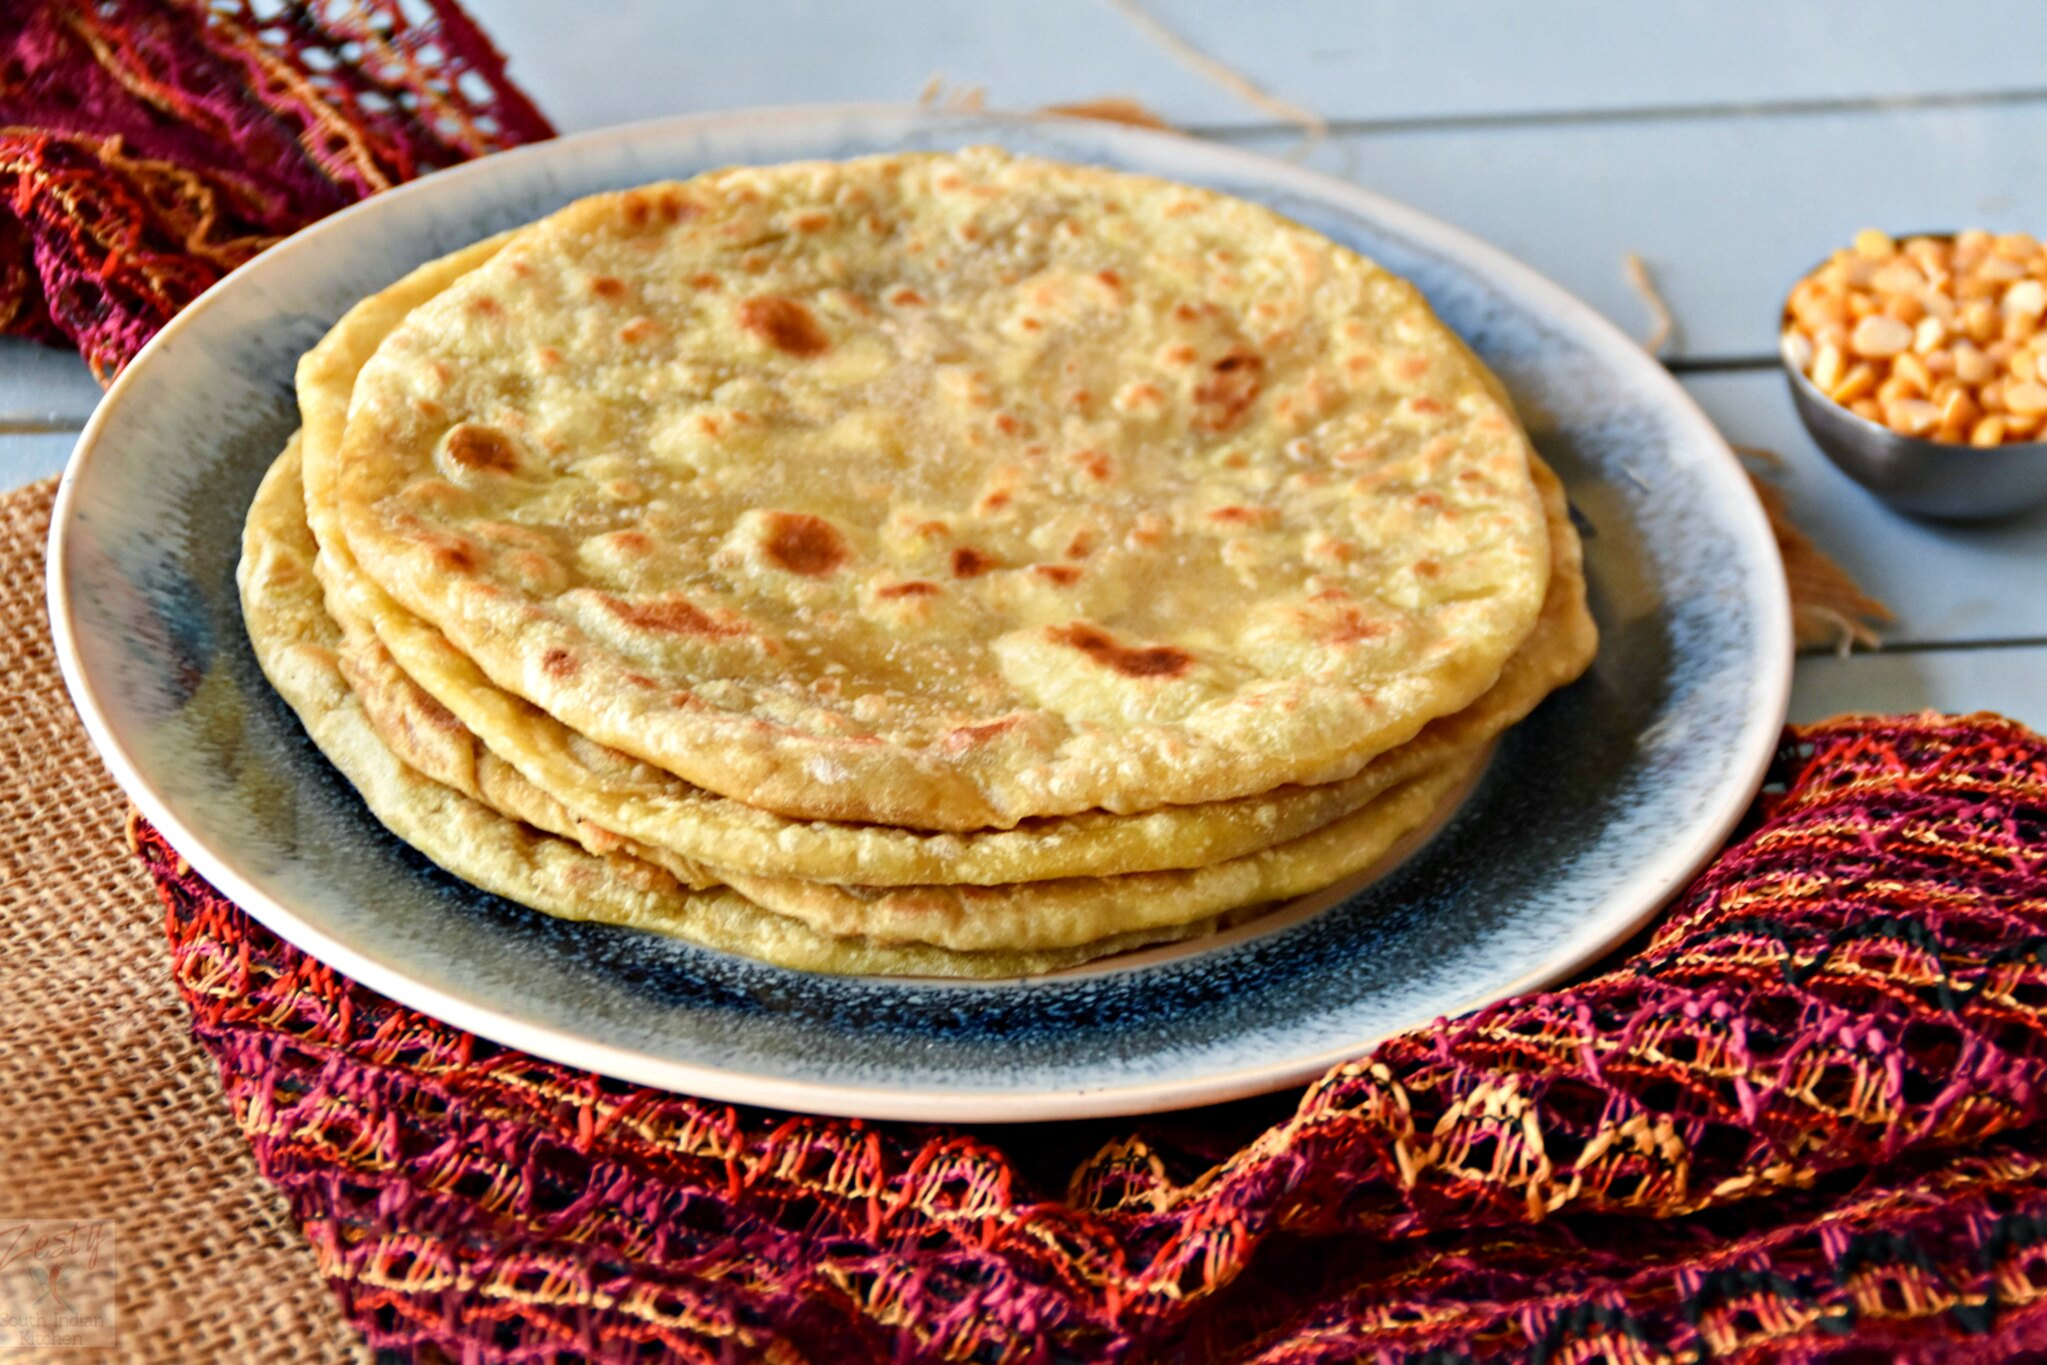 Delicious Traditional Flatbread Stuffed With Sweet Filling